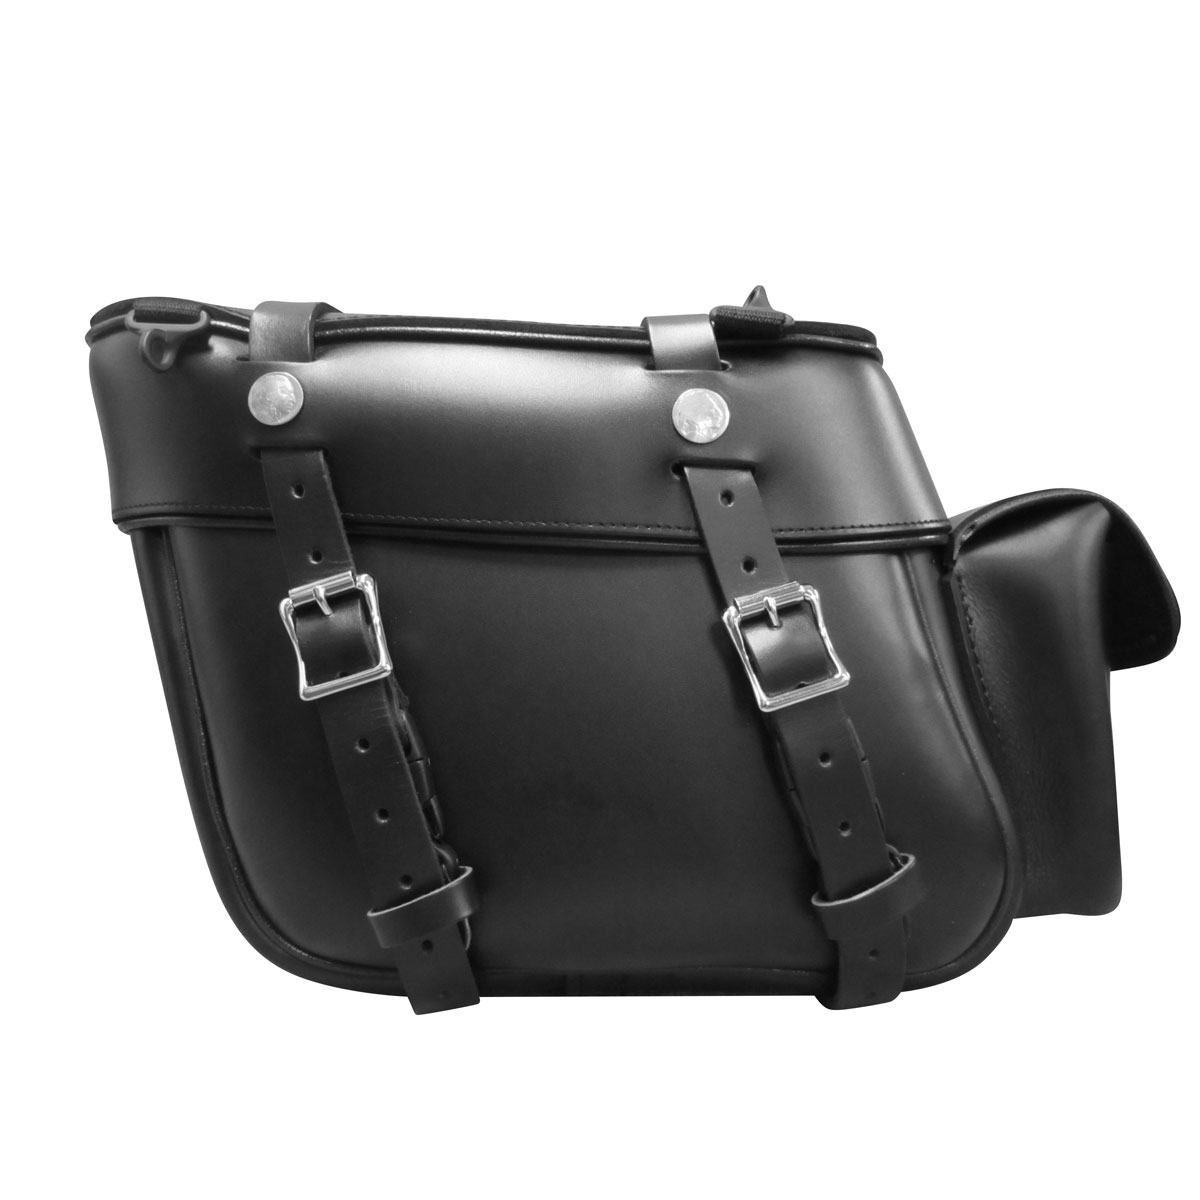 Leatherworks, Inc. Deluxe Box Top Saddlebags